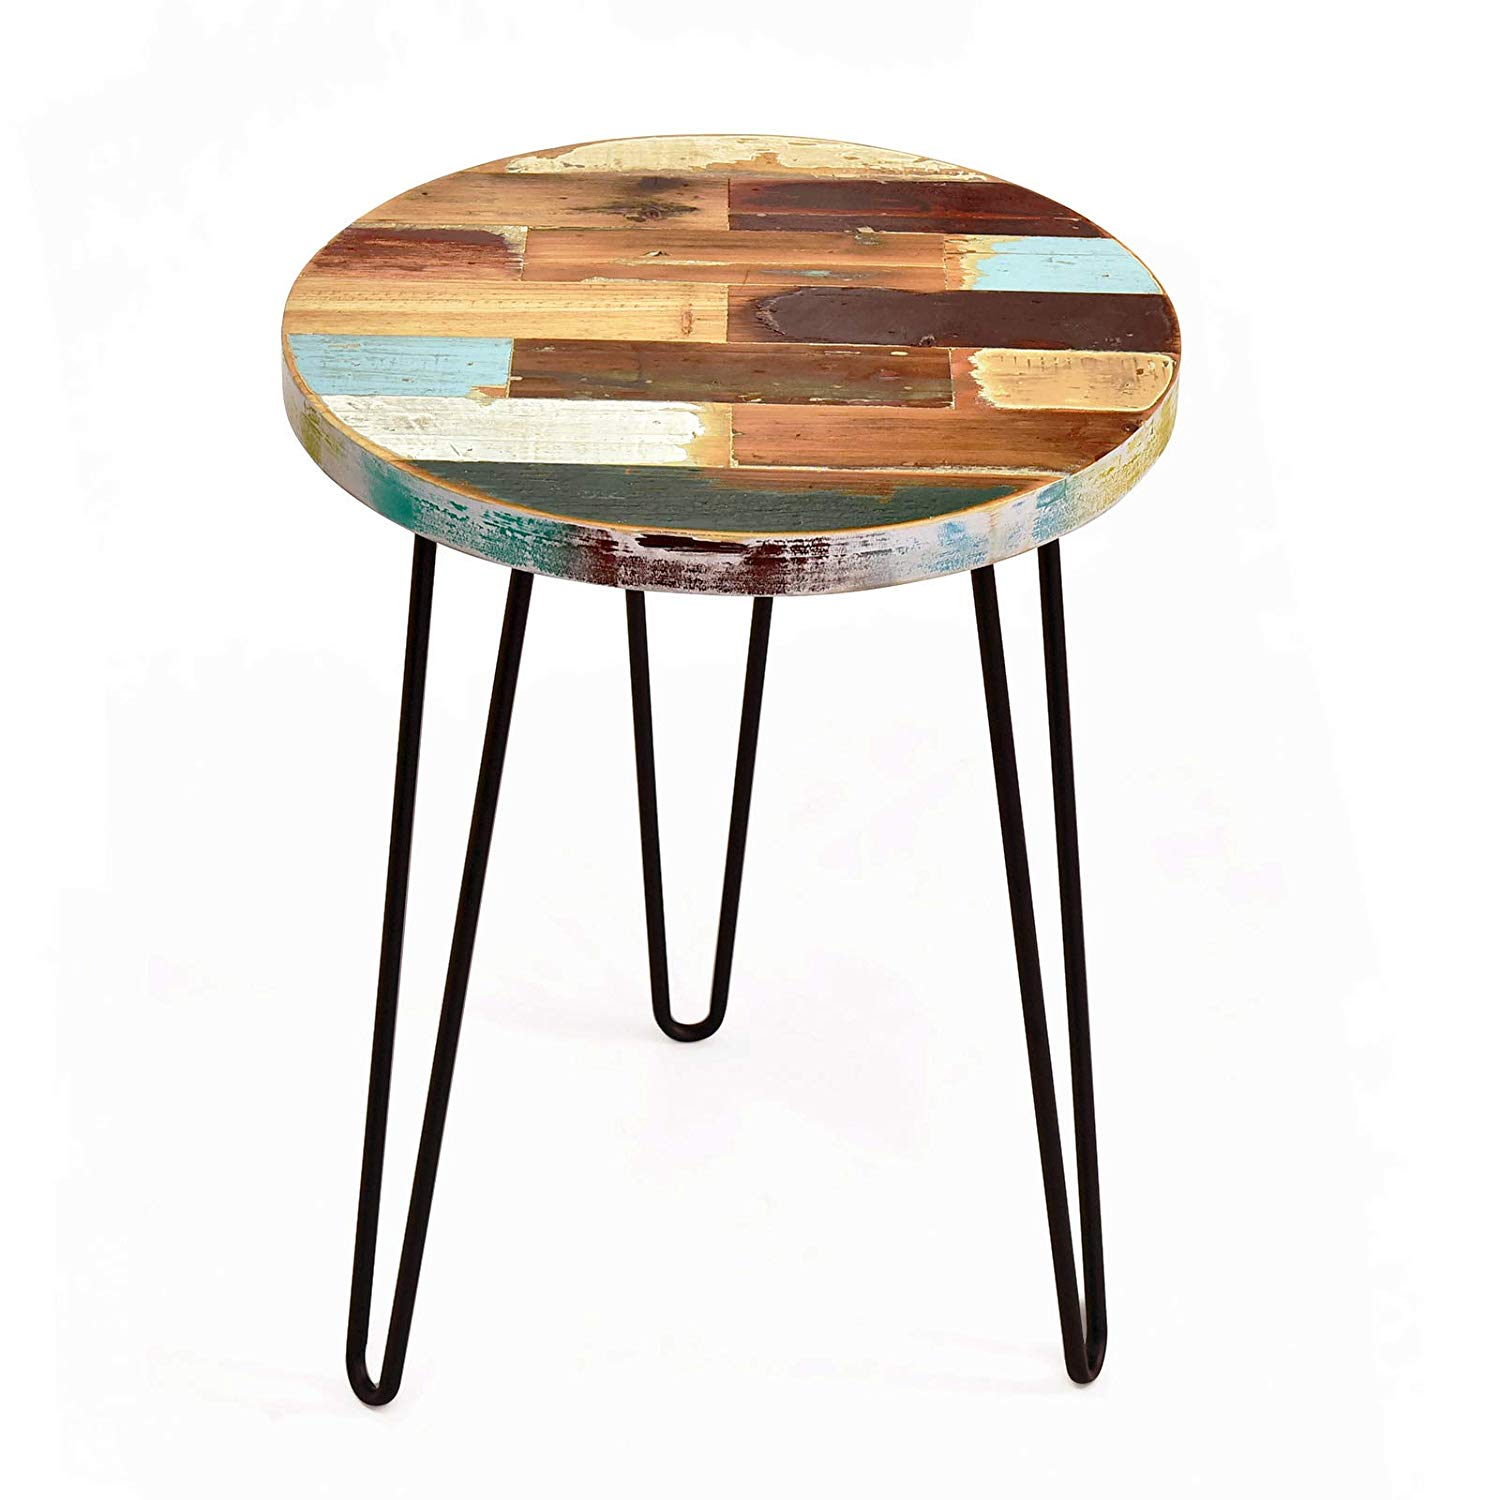 welland side table reclaimed wood round hairpin leg end tall outdoor accent night stand recycled boat kitchen dining designer white coffee storage target file cabinet oriental